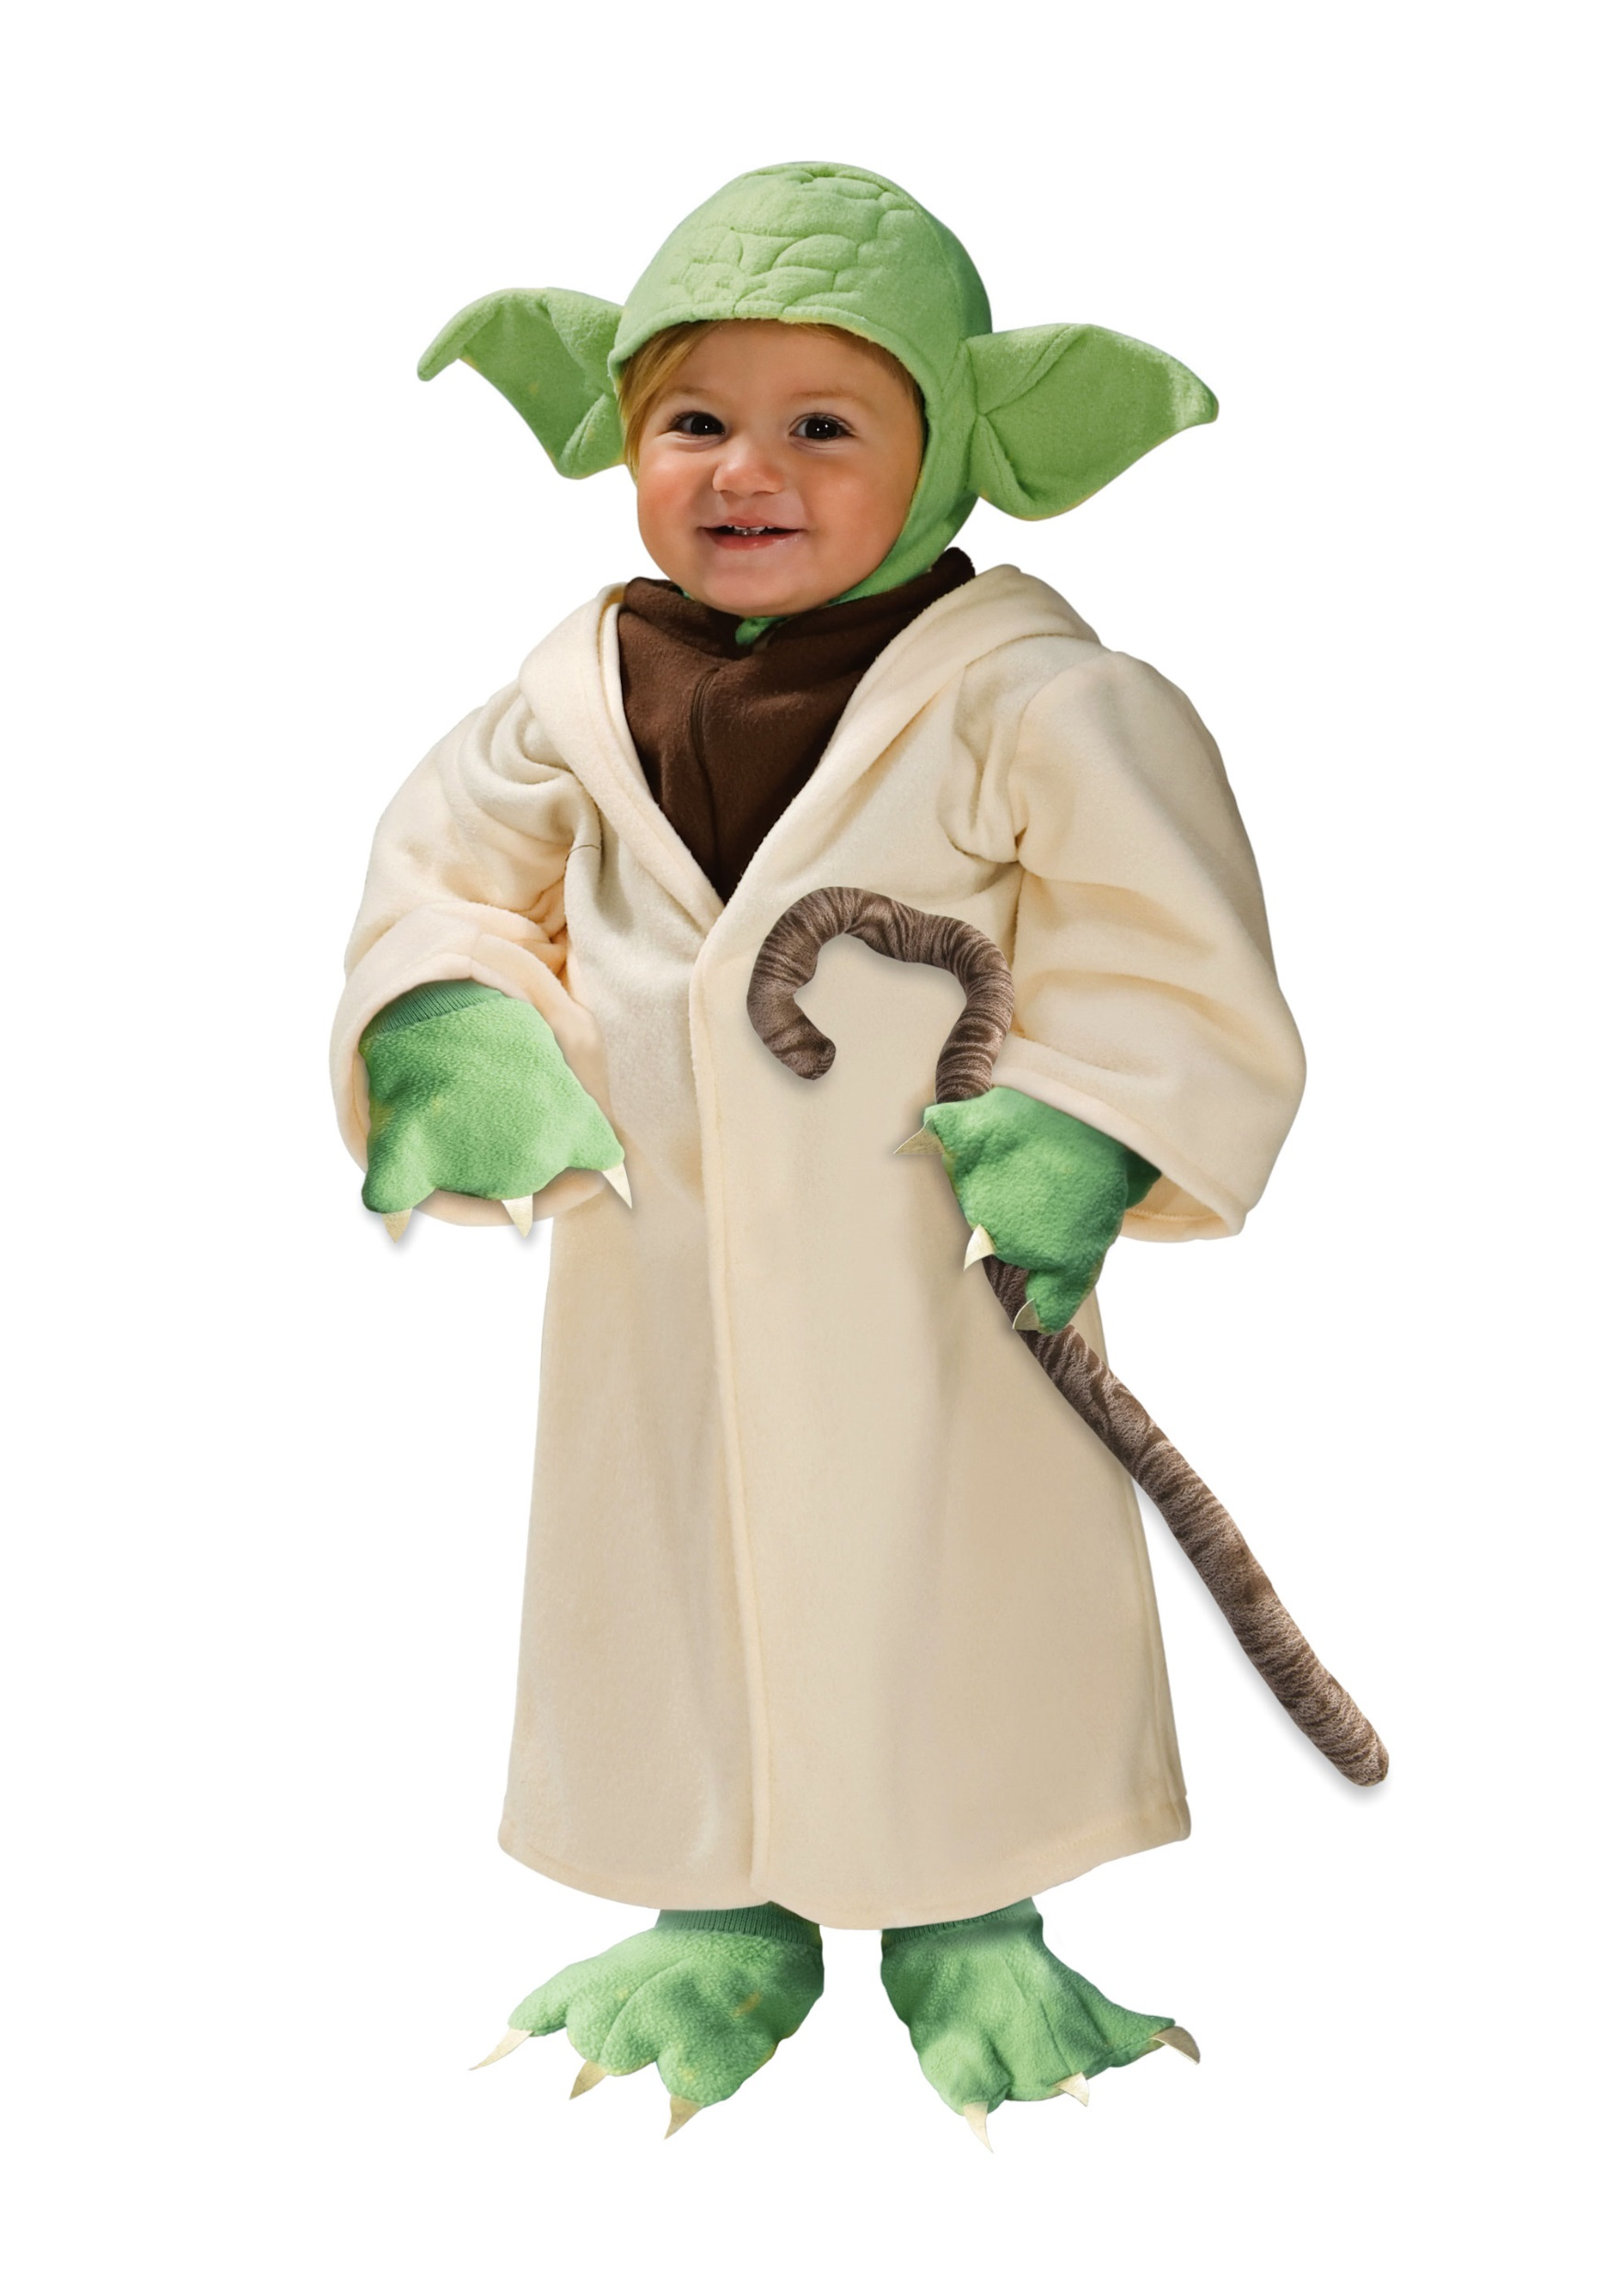 Yoda Toddler Costume  sc 1 st  Halloween Costume : annie costume toddler  - Germanpascual.Com